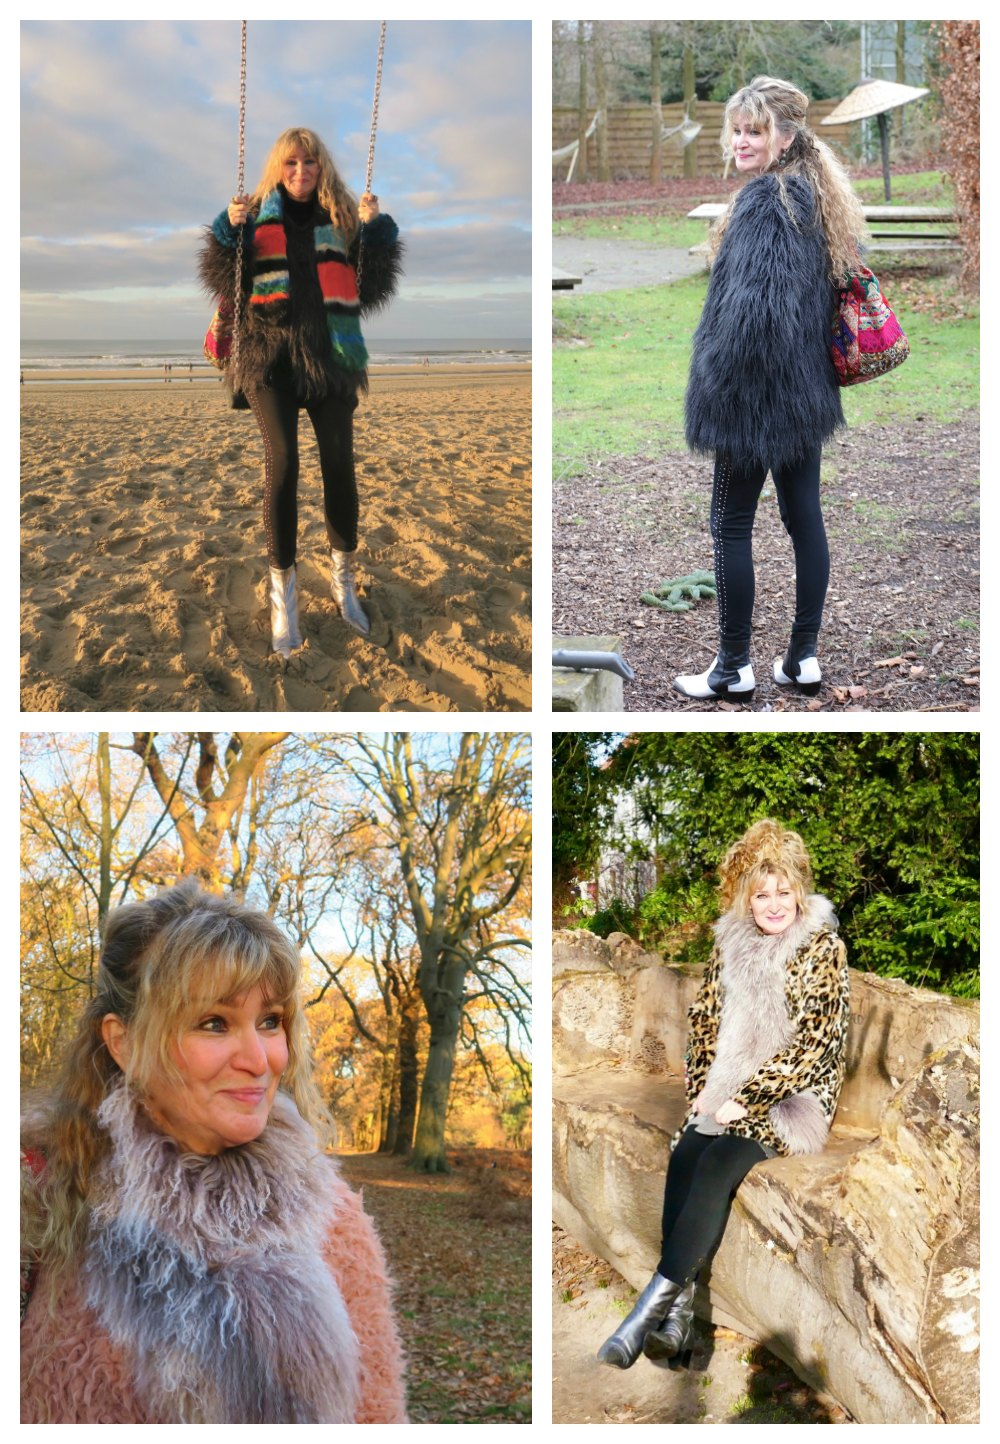 Woman in furry outfits |curlytraveller.com